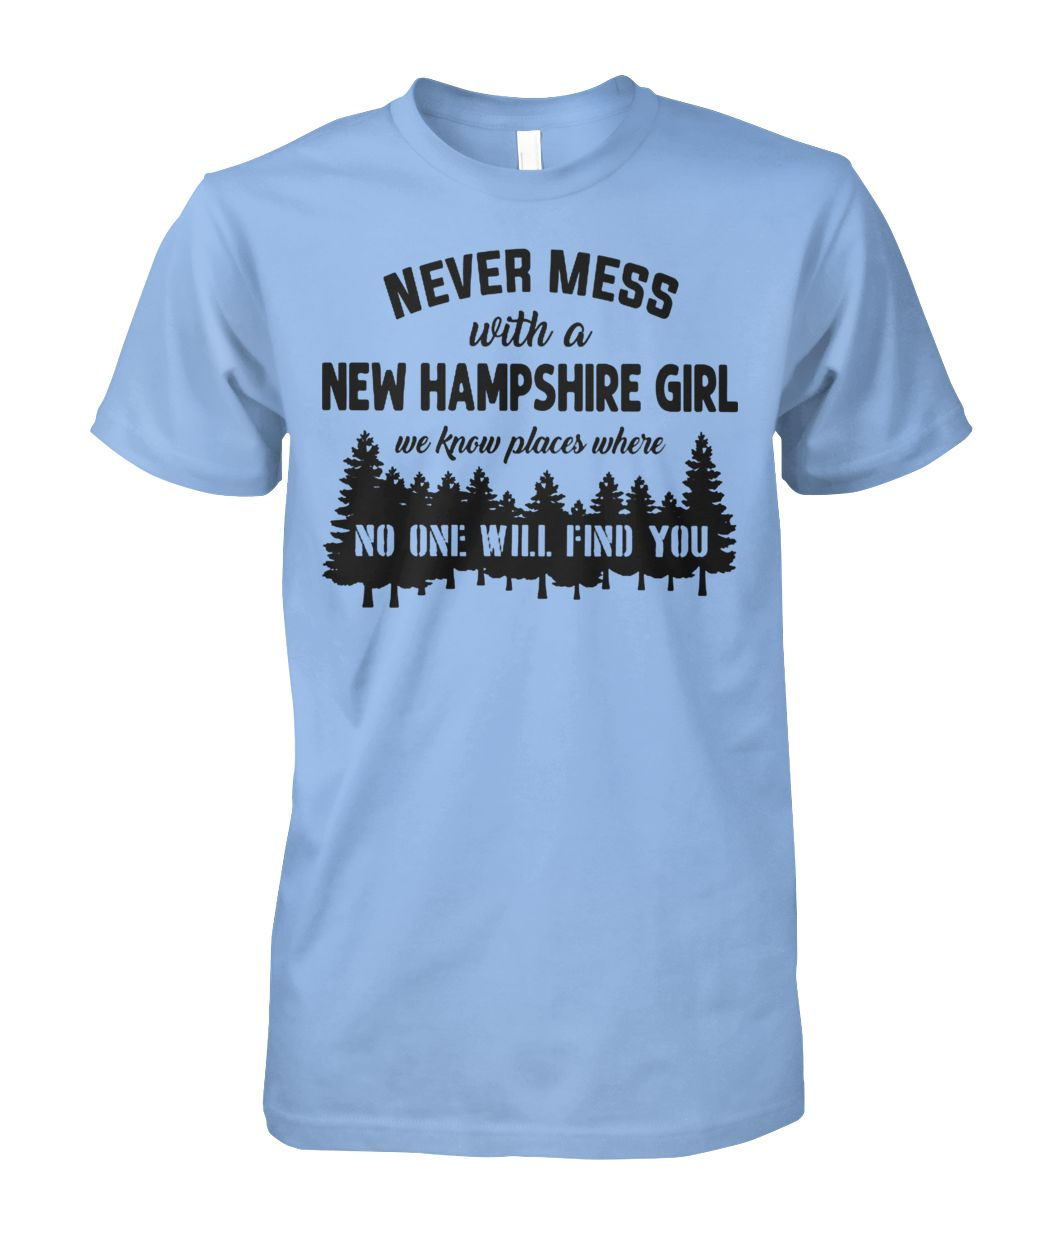 Limited edition Never mess with a new hampshire girl we know places where no one will find you shirt